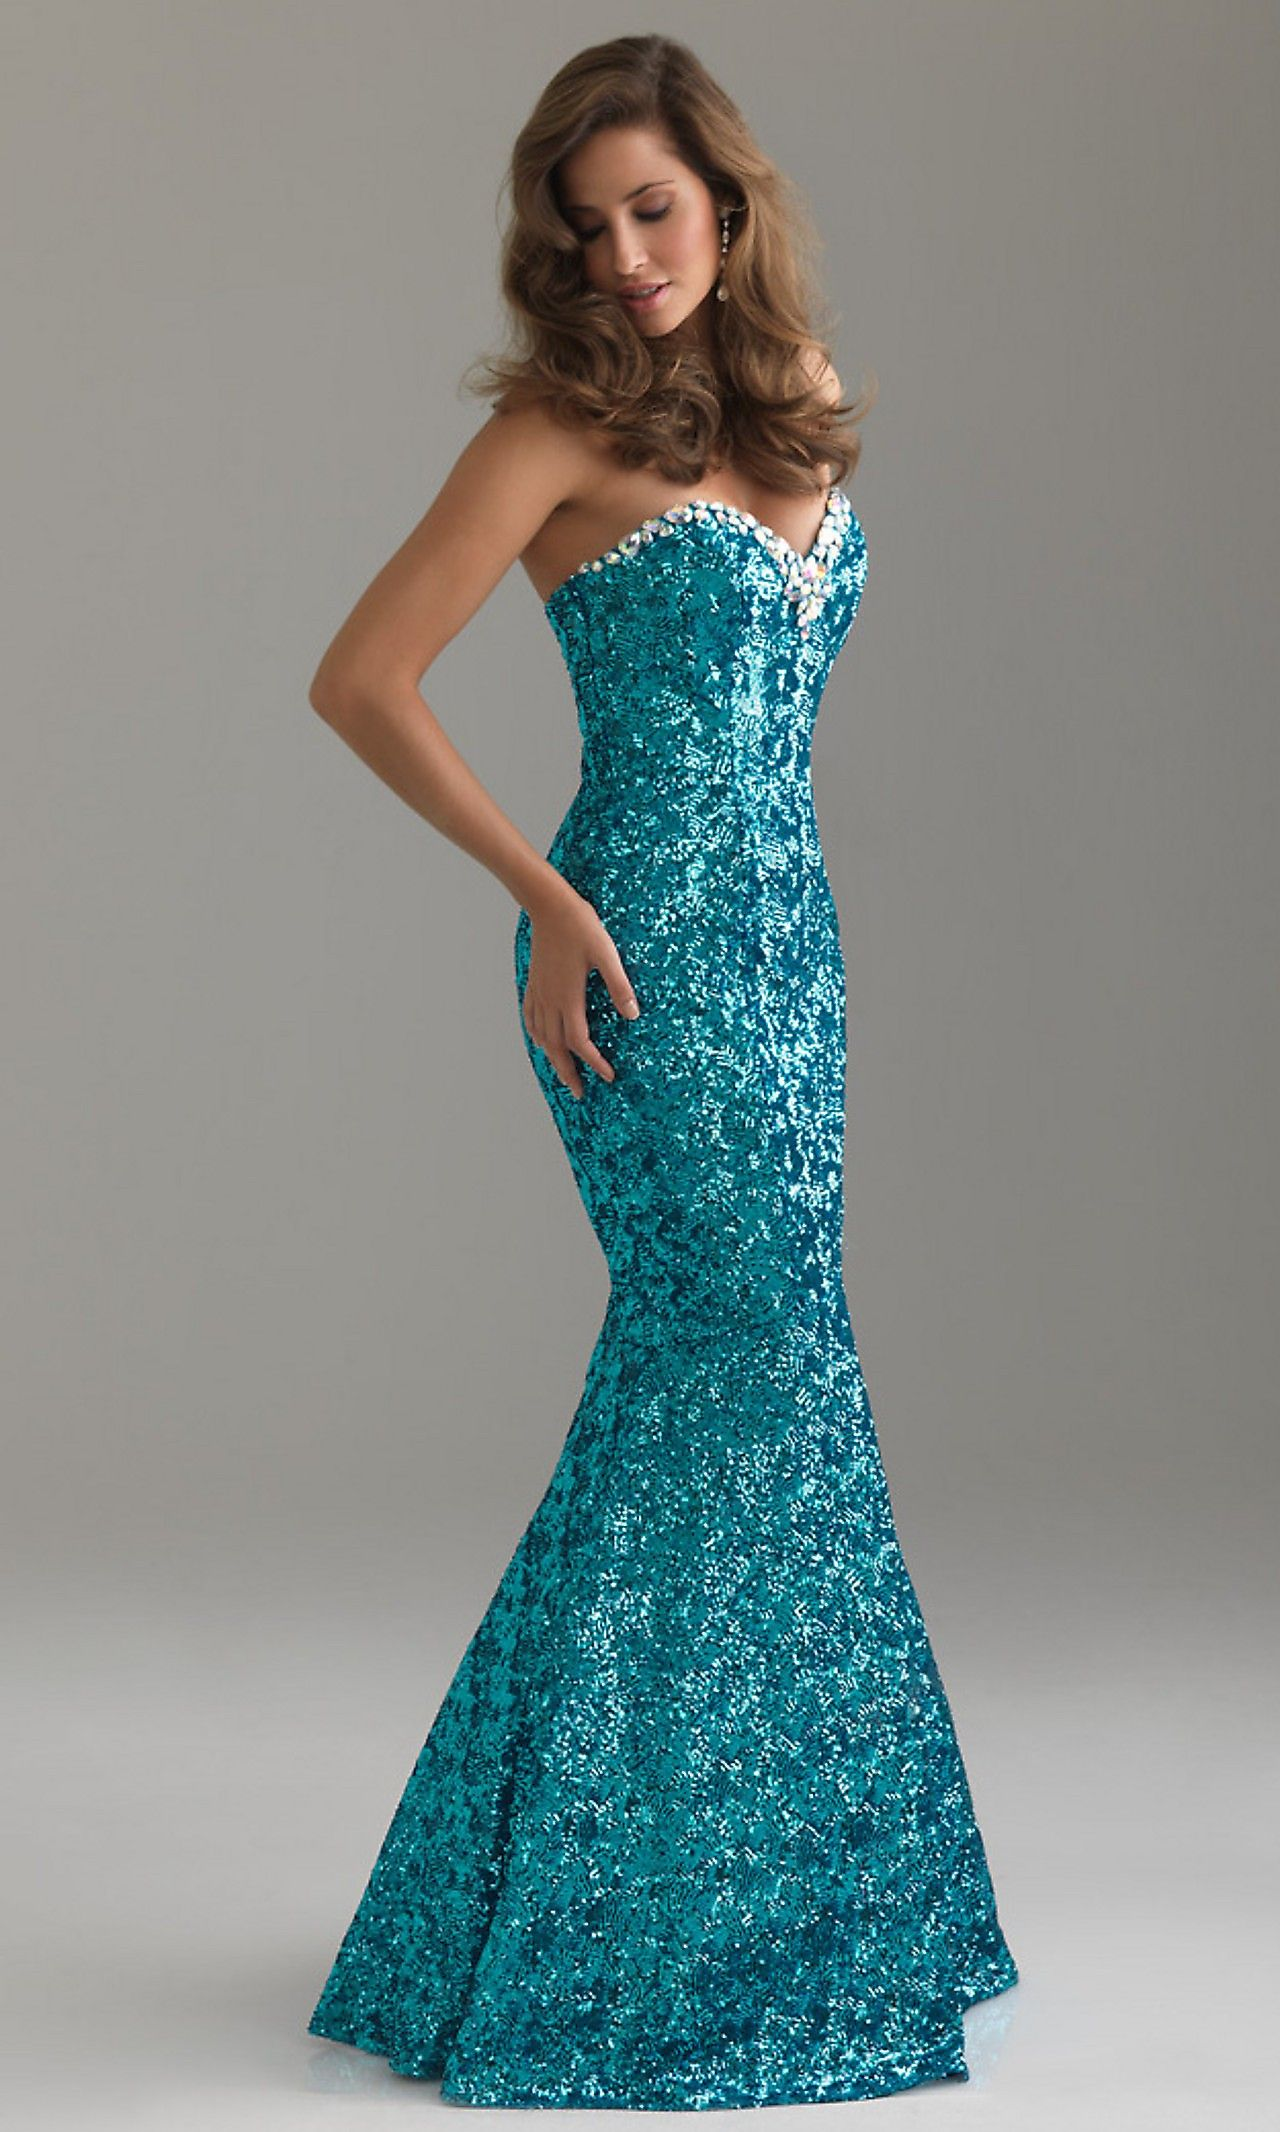 Extravagant Night Moves Evening Gown | Fashion | Pinterest | Night ...